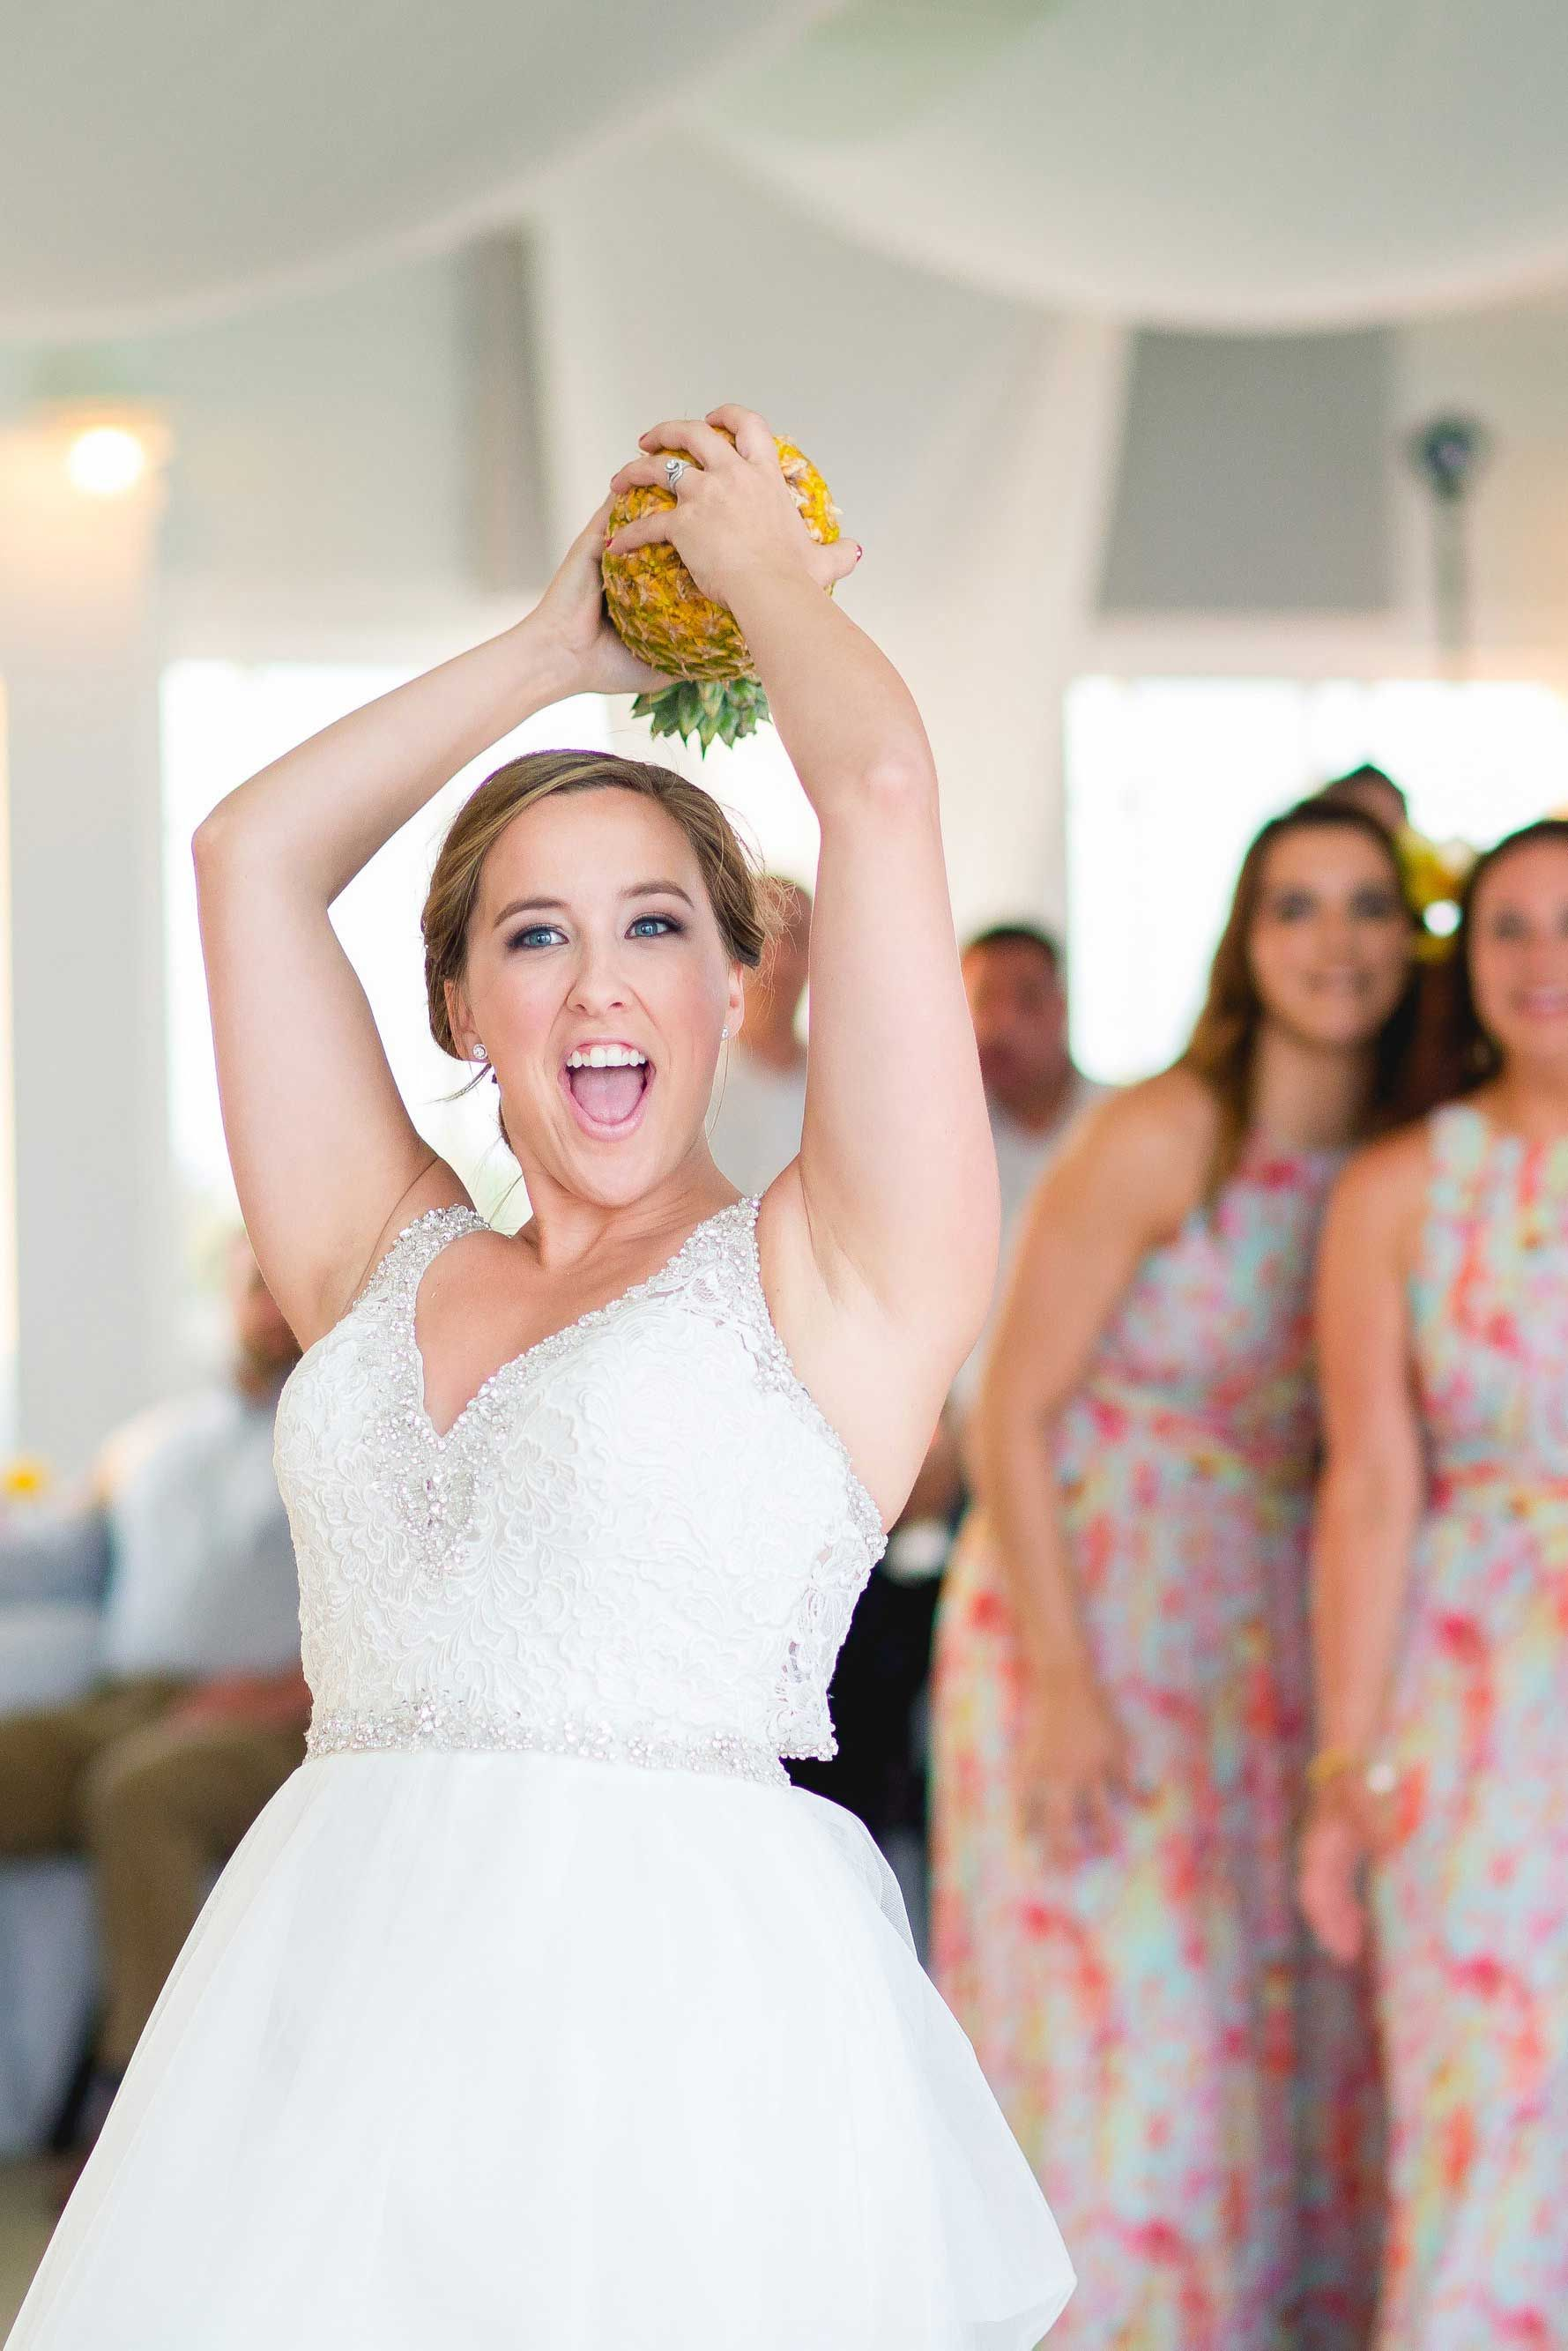 Forget a bouquet toss! This coastal bride opted for a pineapple instead.